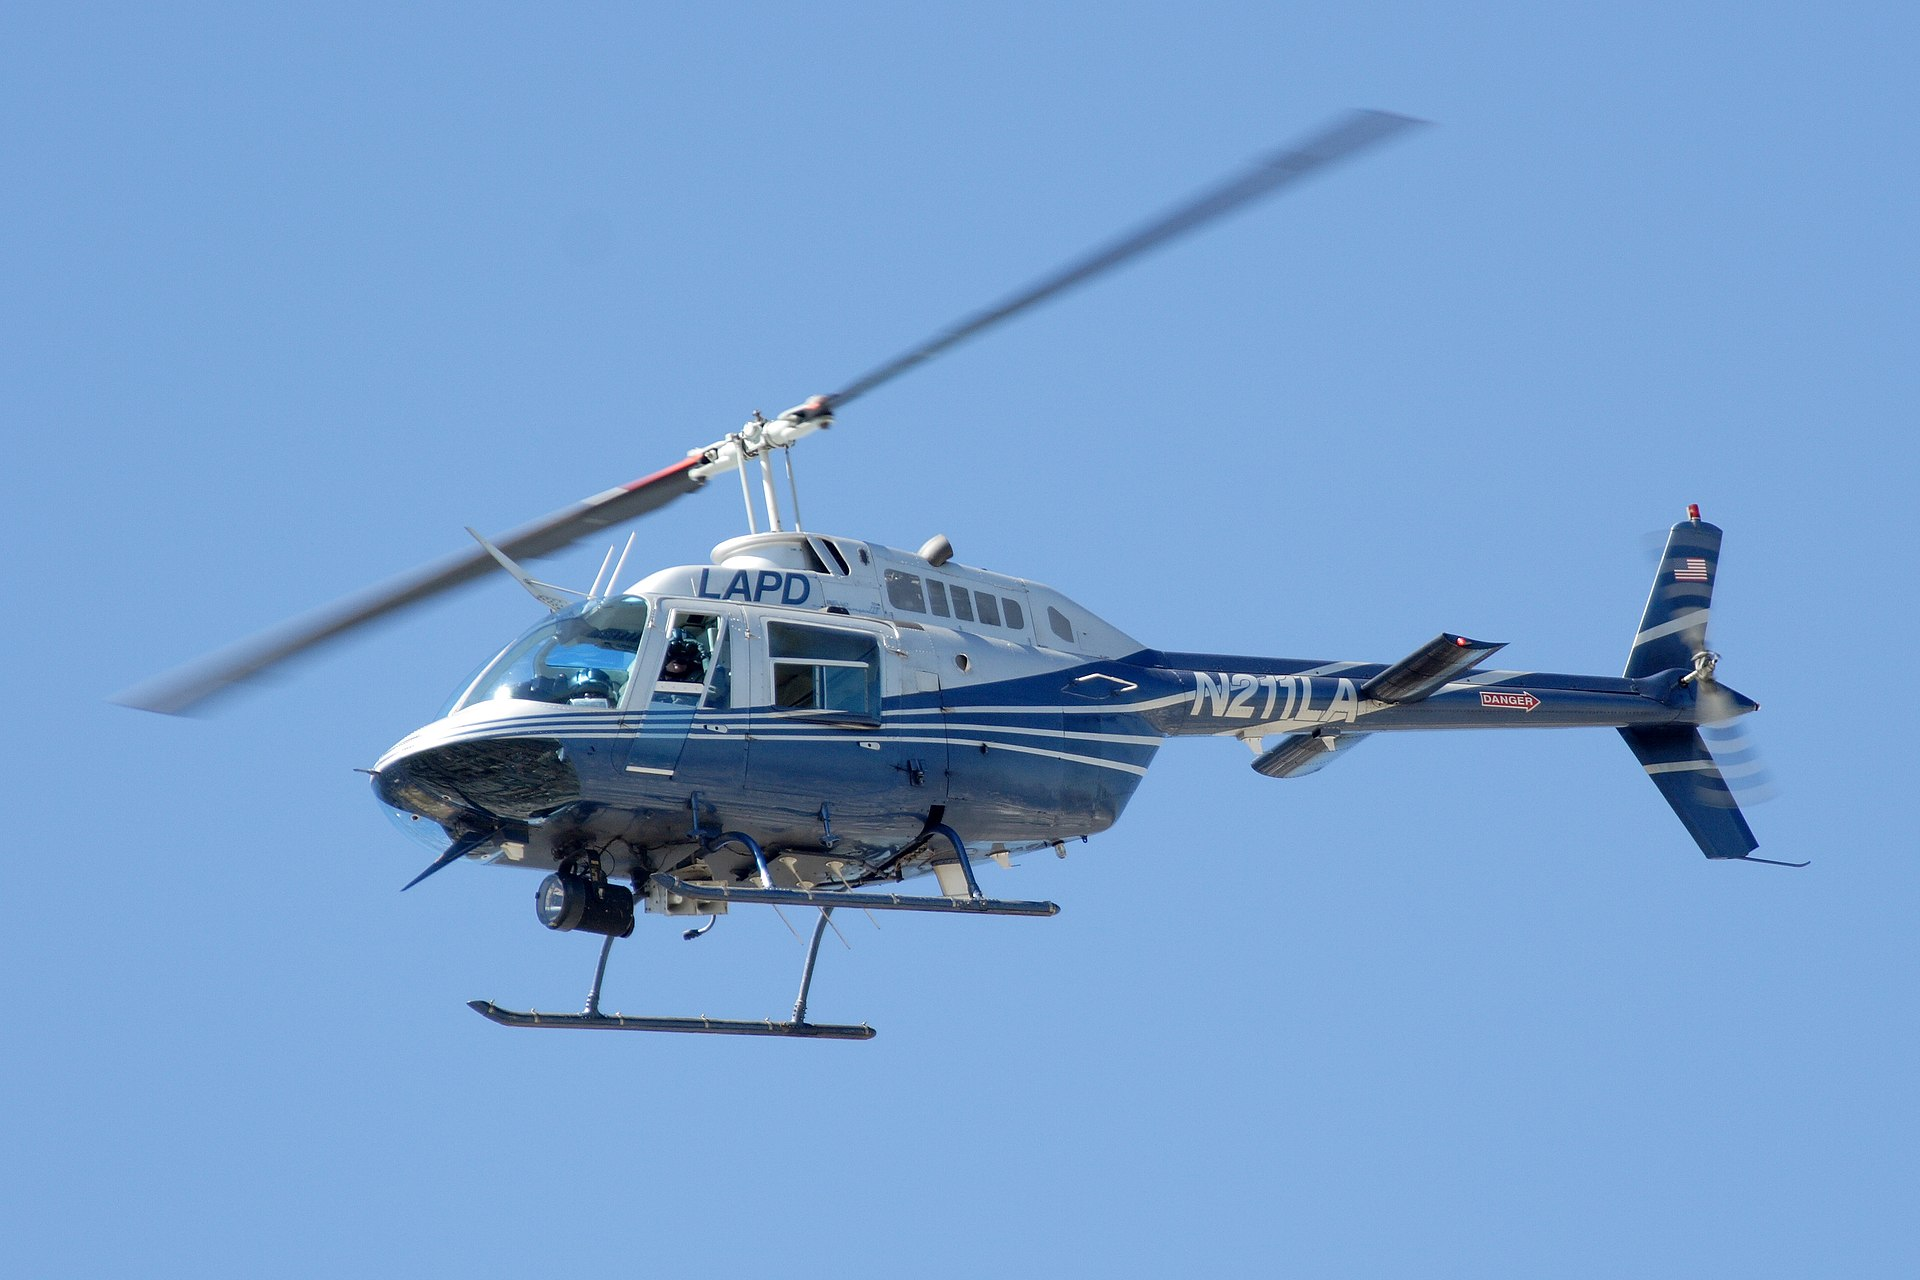 leonardo helicopter with Bell 206b on Real estate moreover The Pakistan Air Force In 2016 And Beyond moreover Las Maquinas Voladoras De Leonardo Da Vinci besides Bell 206B furthermore Farben Zum Aussuchen.